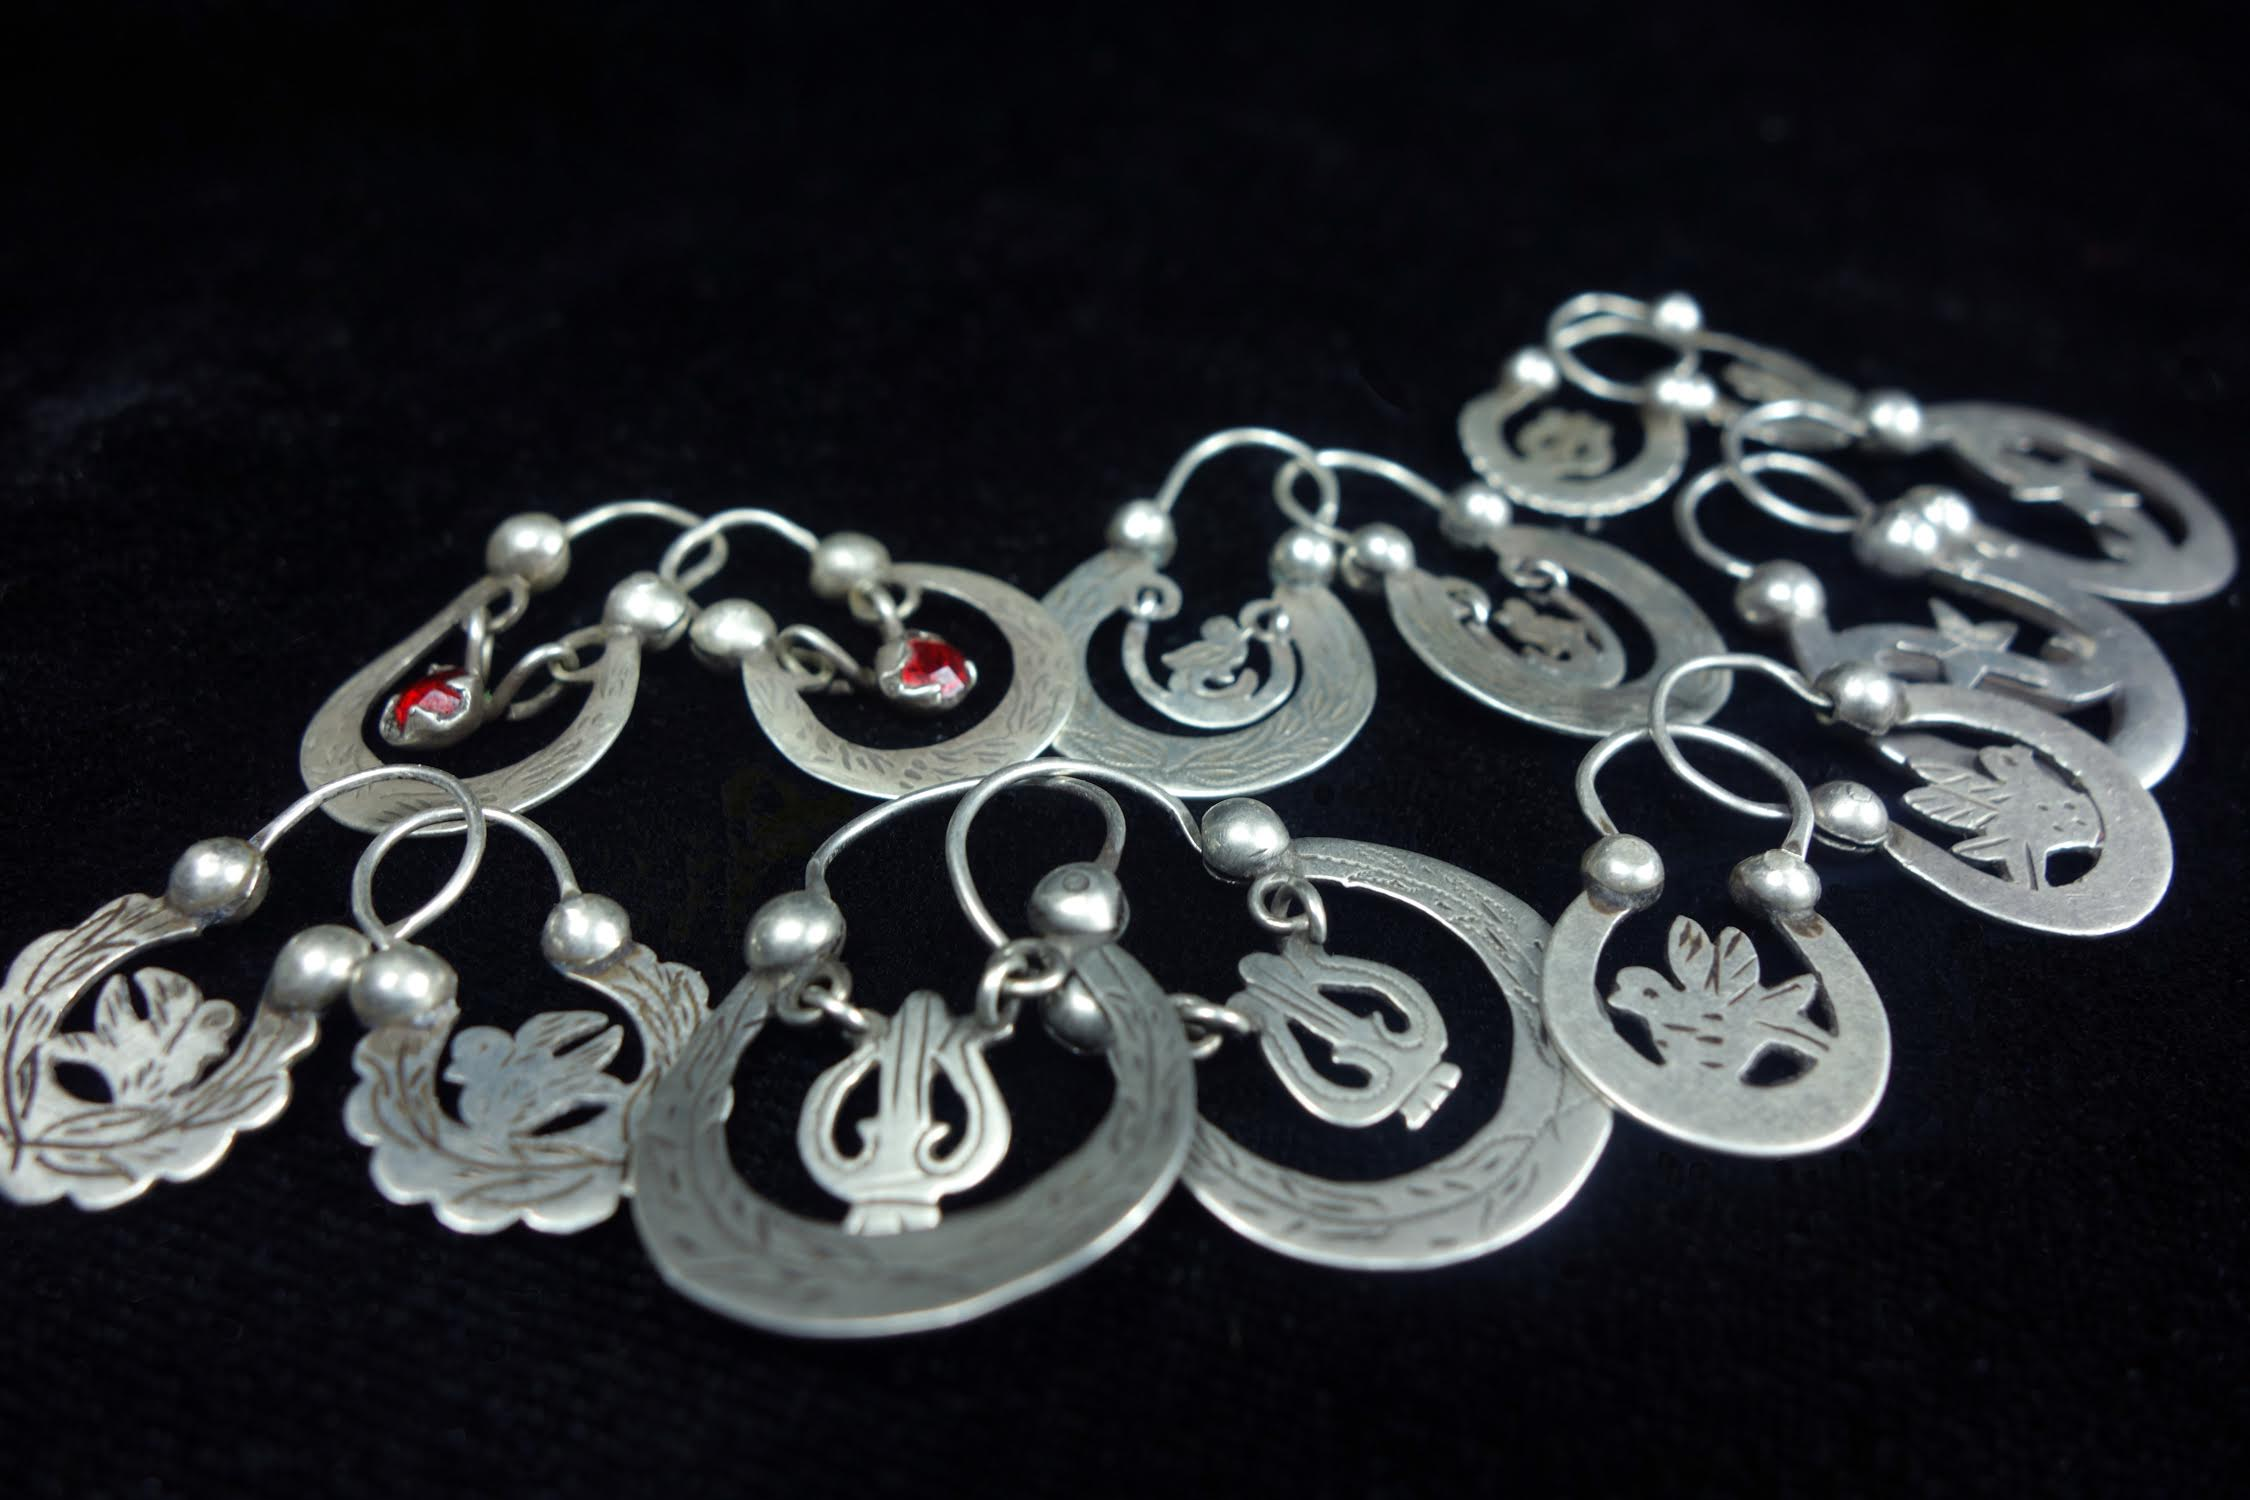 A Wonderful Collection of Antique Crescent Moon Earrings from The Highland Region of Guatemala